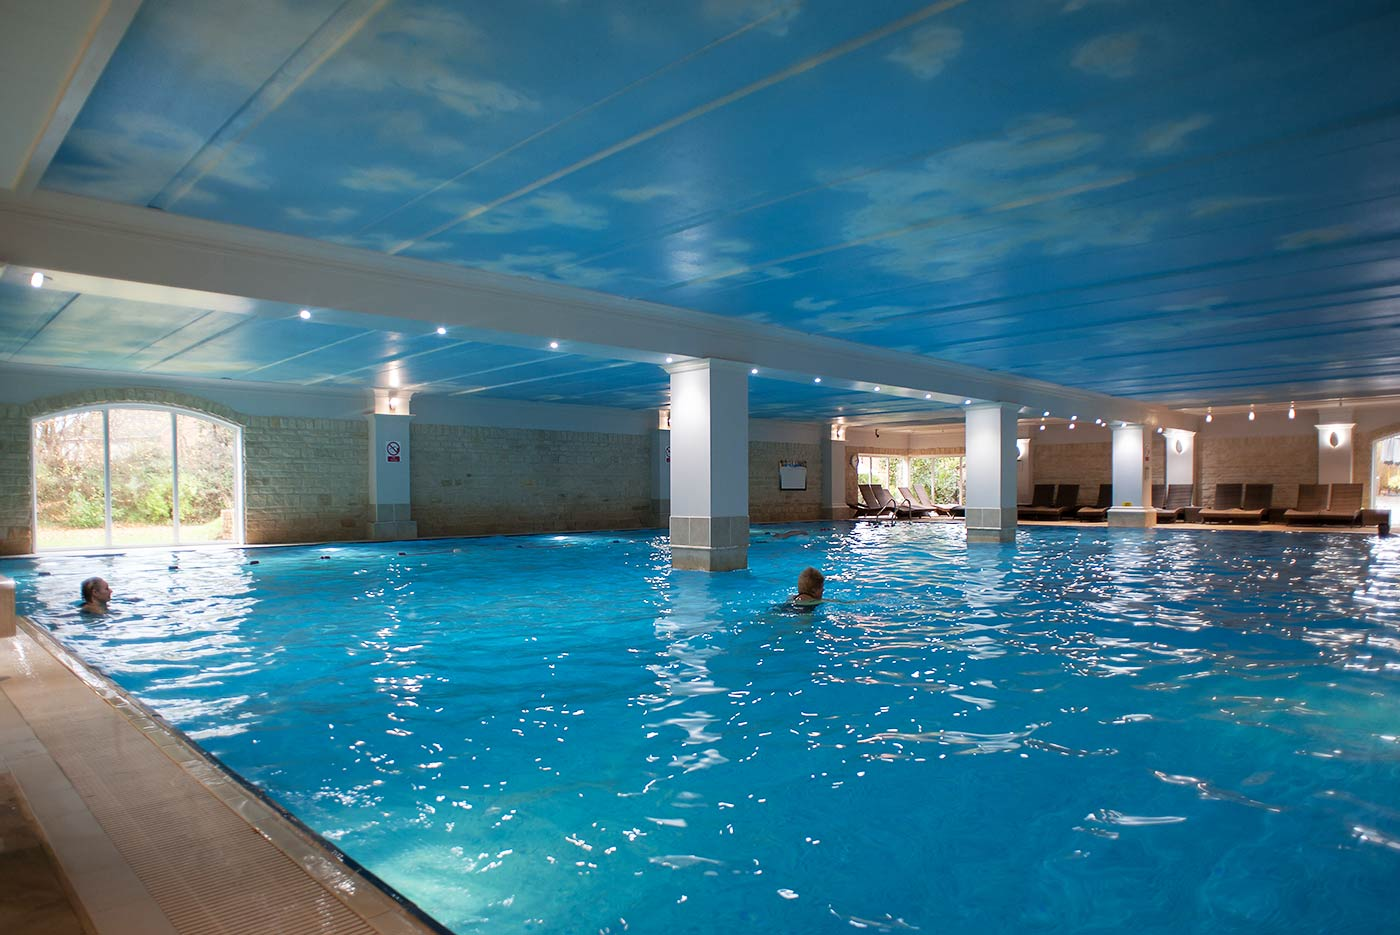 Health Club & Spa In Hereford, Herefordshire - Holmer Park